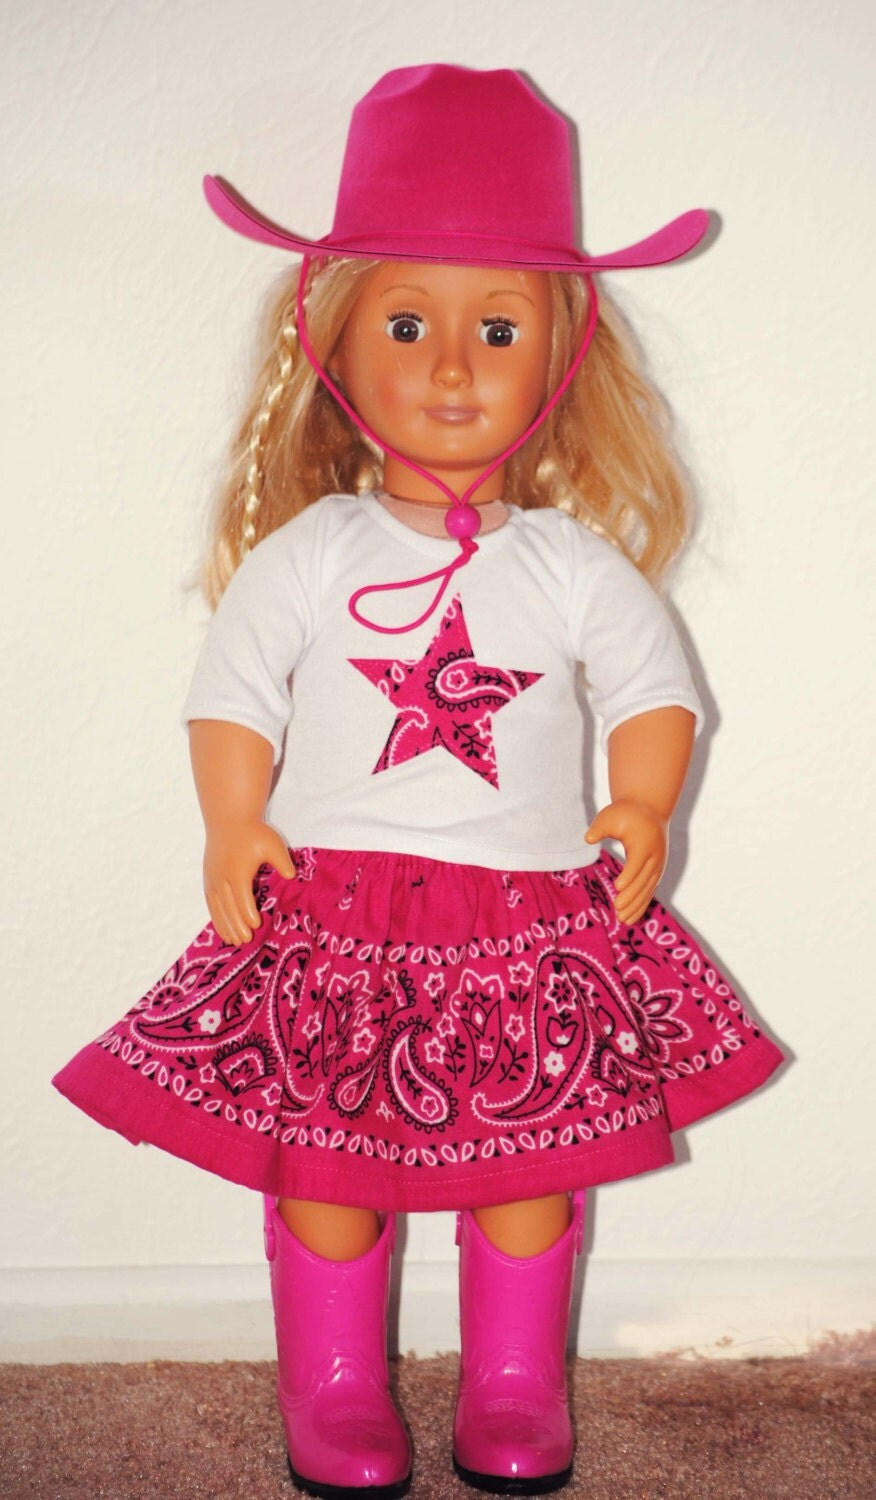 American Girl Doll 18 Inch Cowgirl Outfit 5 Piece Includes